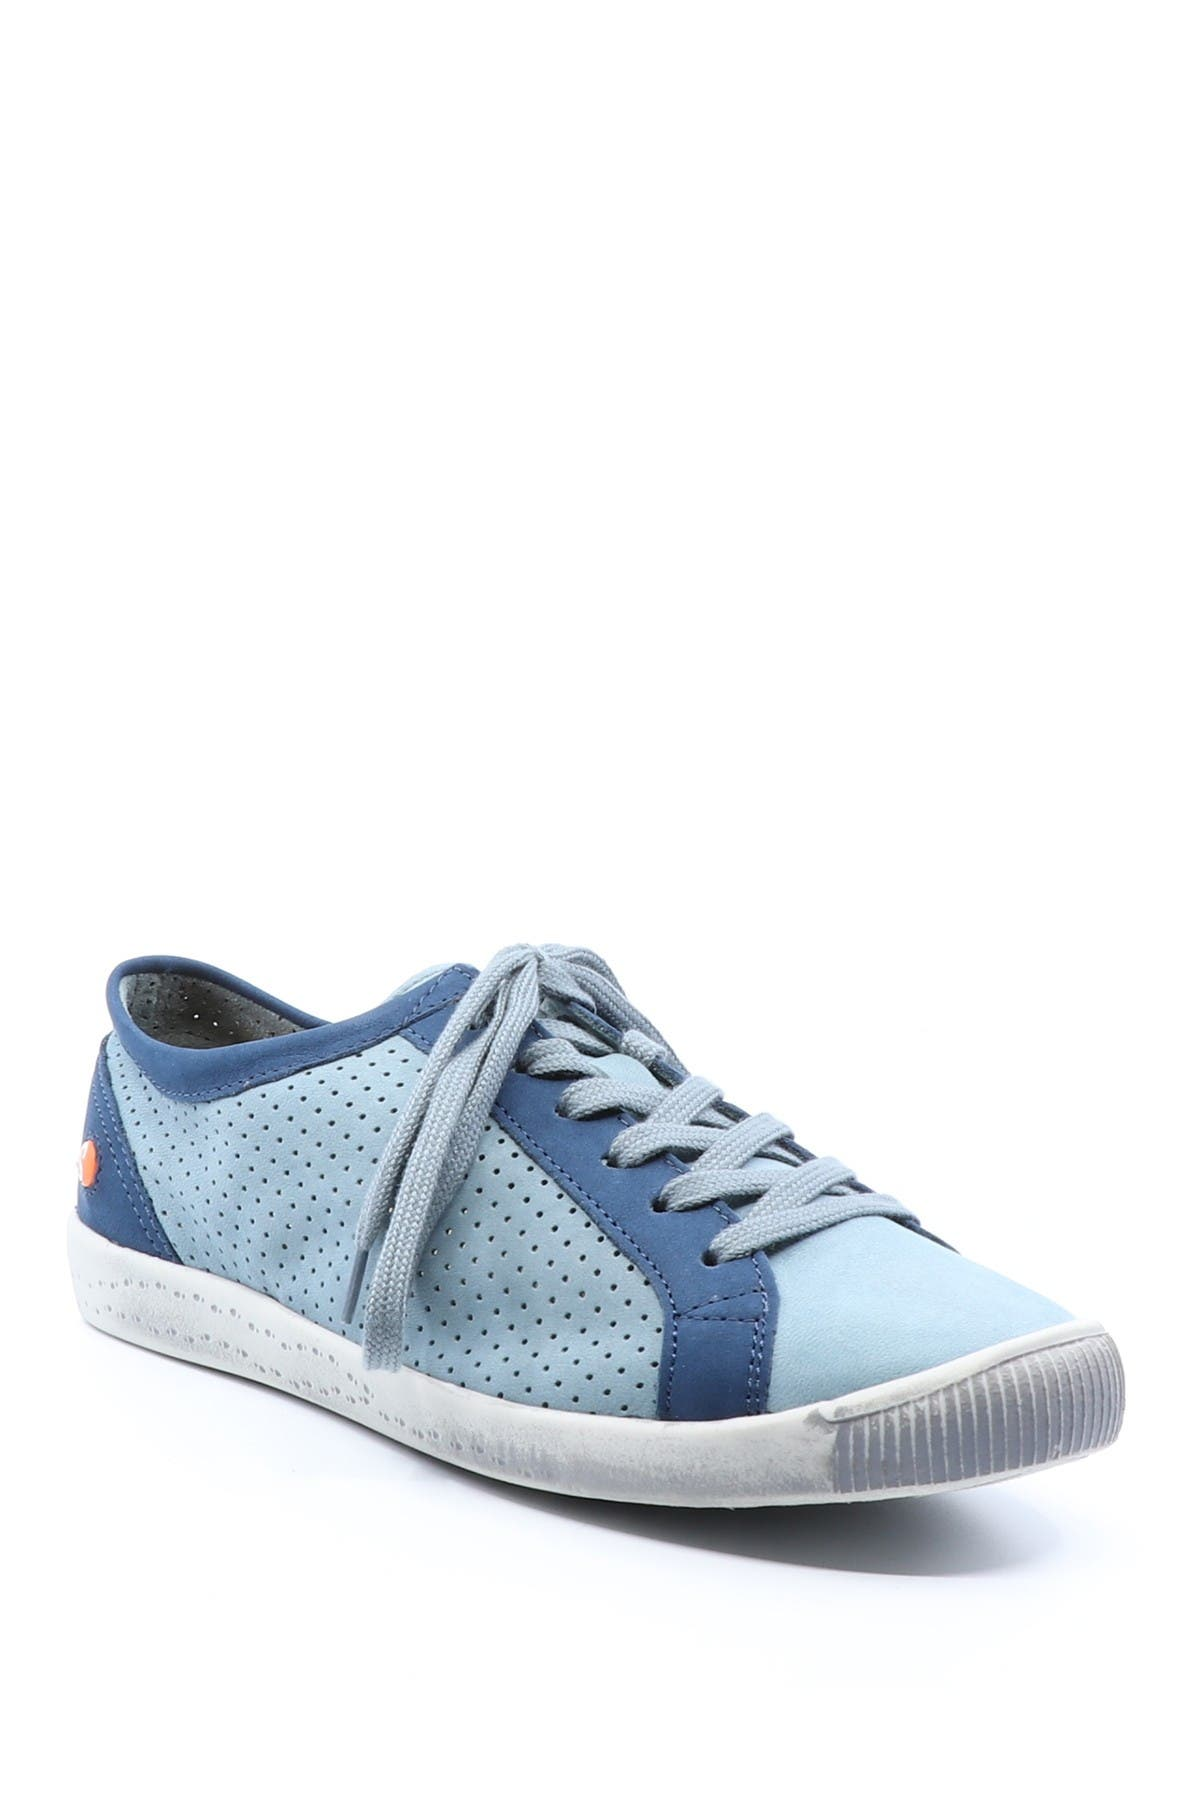 Image of SOFTINOS BY FLY LONDON Fly London Ica Sneaker